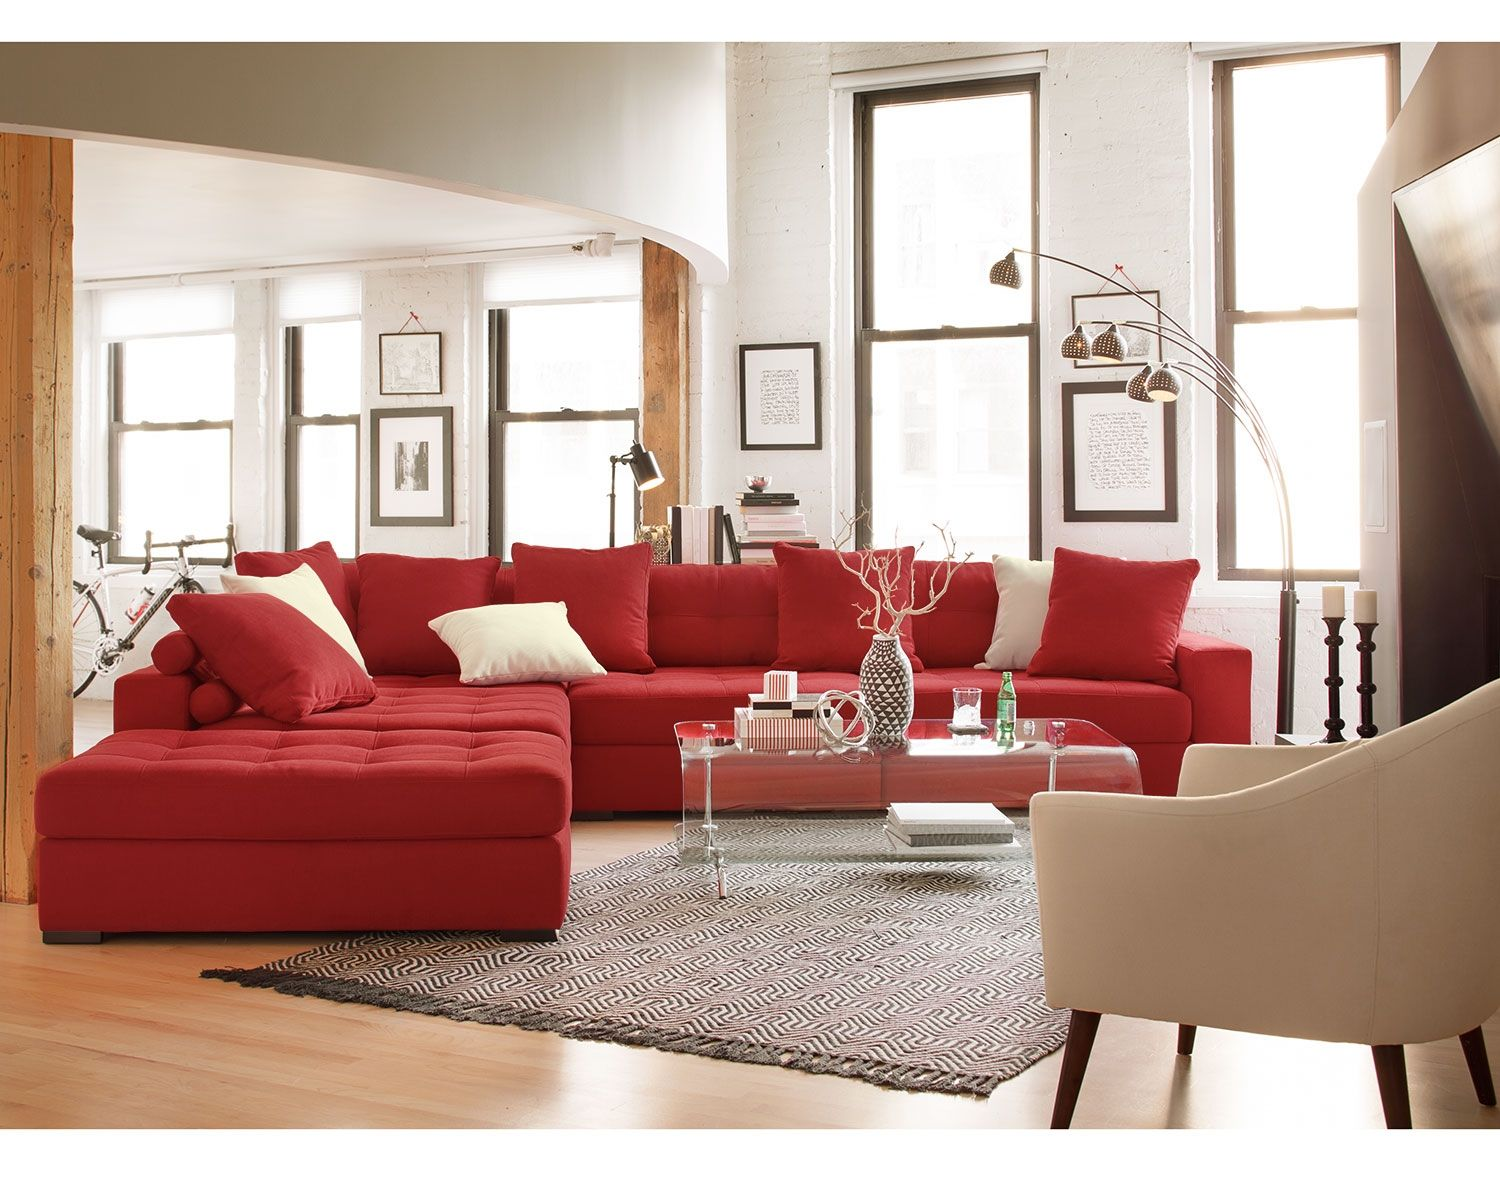 Value City Credit Card An Option For Furniture Purchases